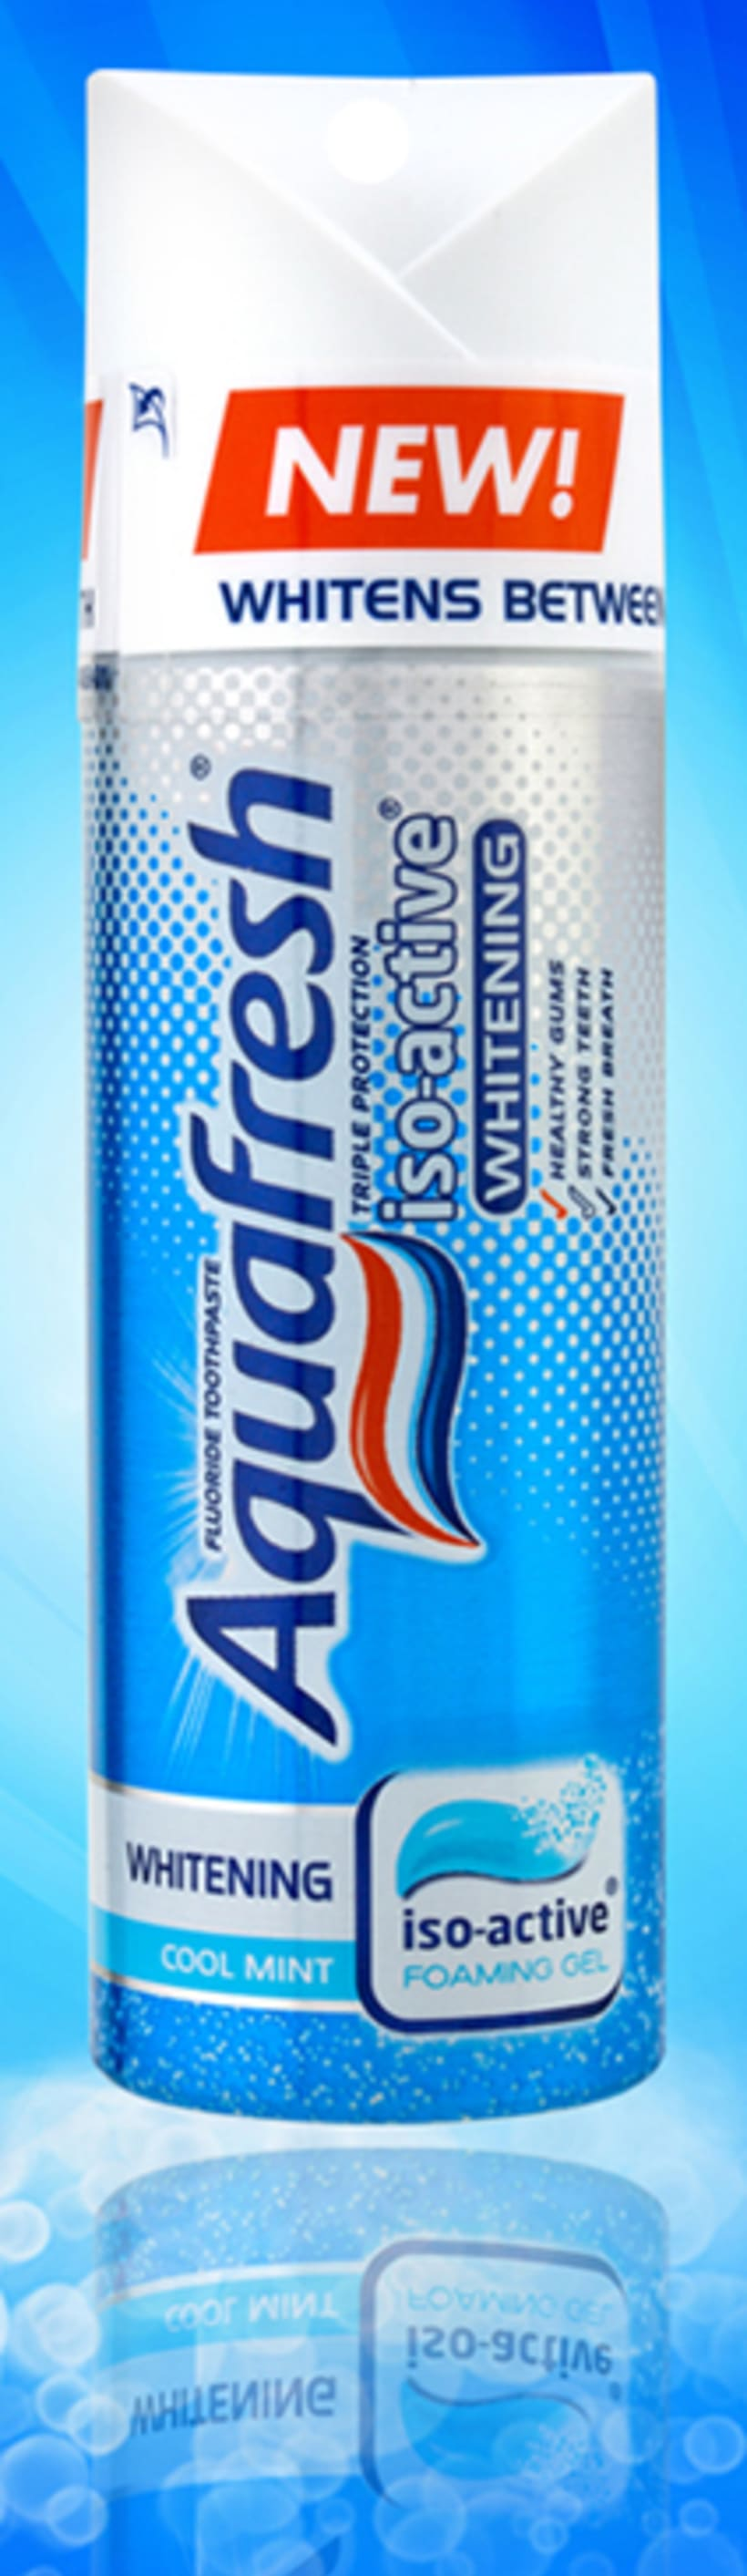 Aquafresh Iso Active Whitening 3